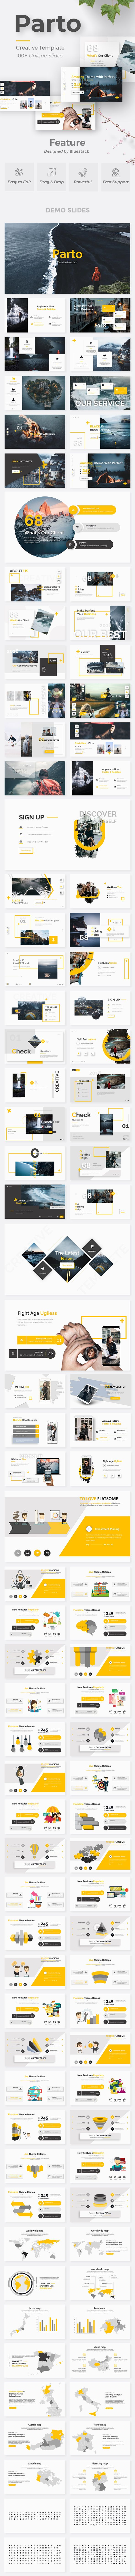 Parto Creative Powerpoint Template — Powerpoint PPT #corporate #flow chart • Download ➝ https://graphicriver.net/item/parto-creative-powerpoint-template/21531216?ref=pxcr